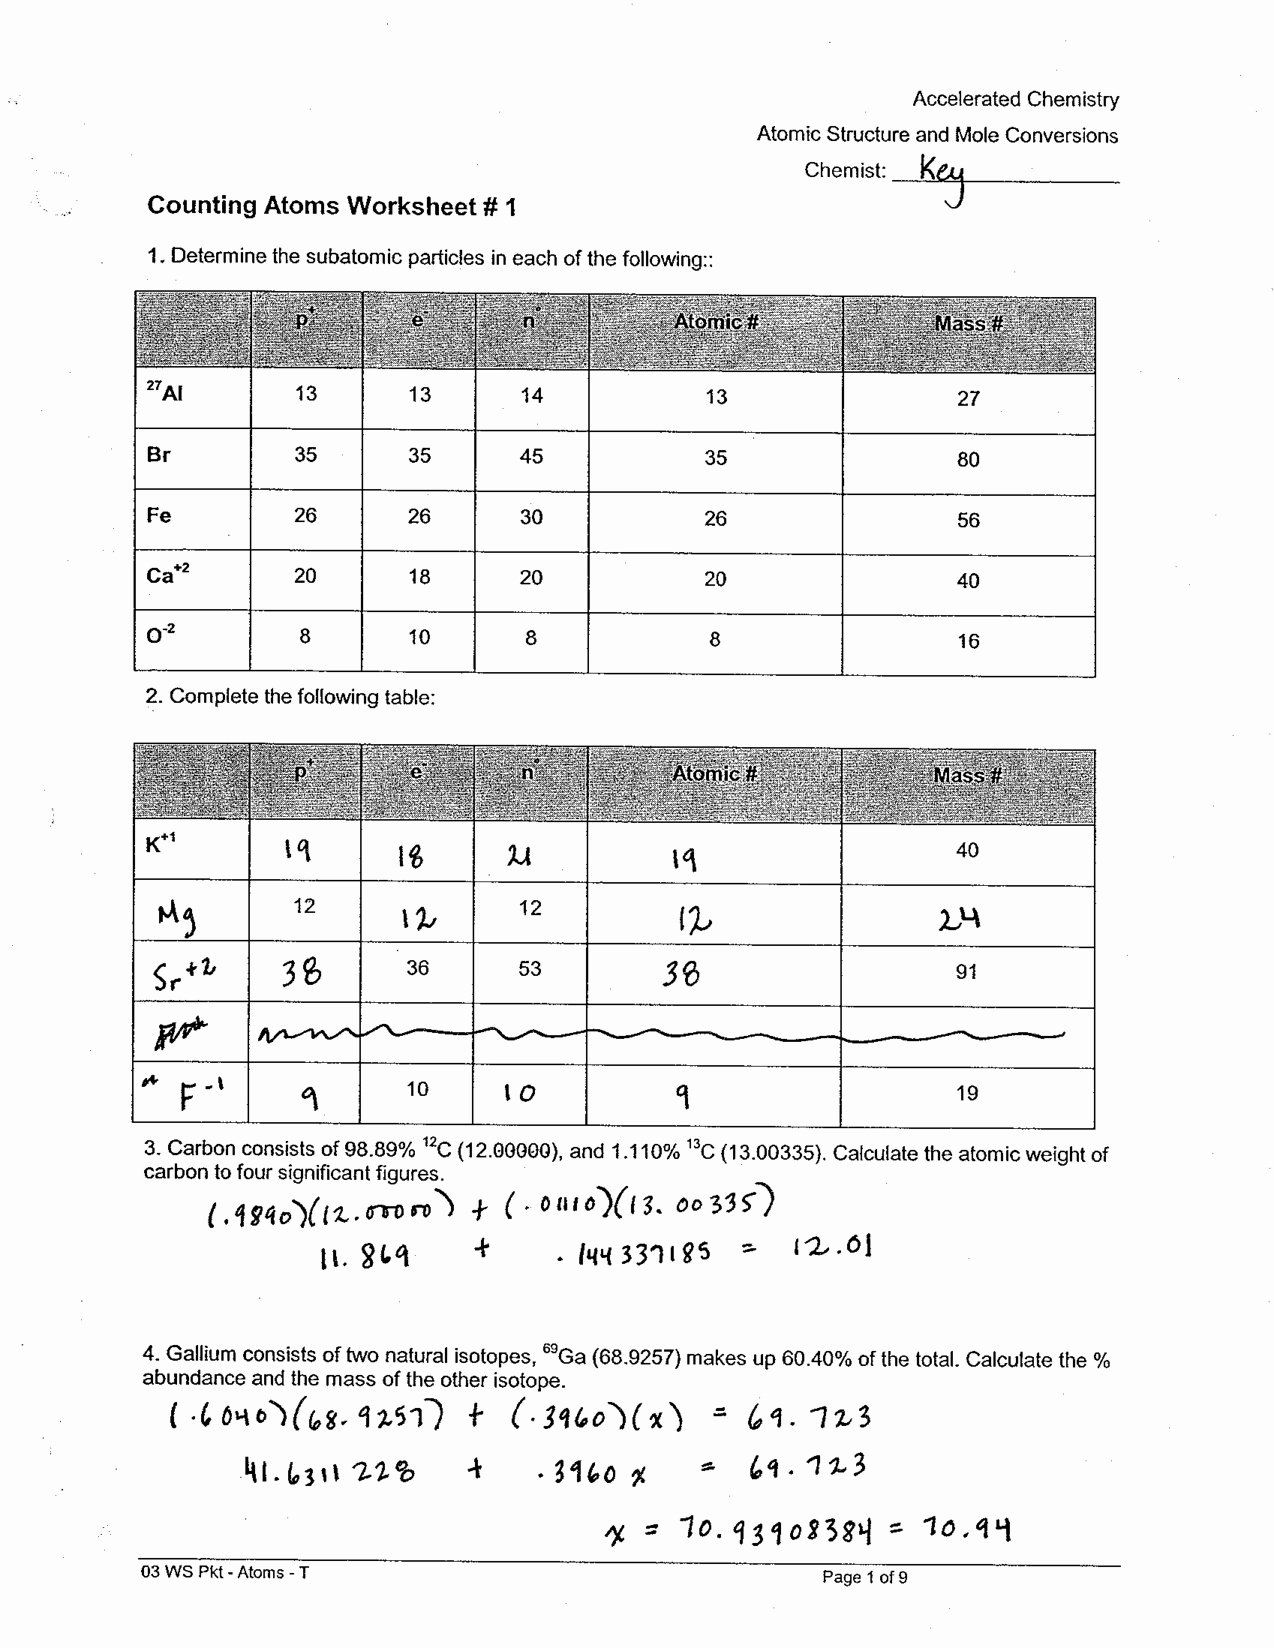 How to Count atoms Worksheet Luxury 16 Best Of Molecules and atoms Worksheet Answer Key